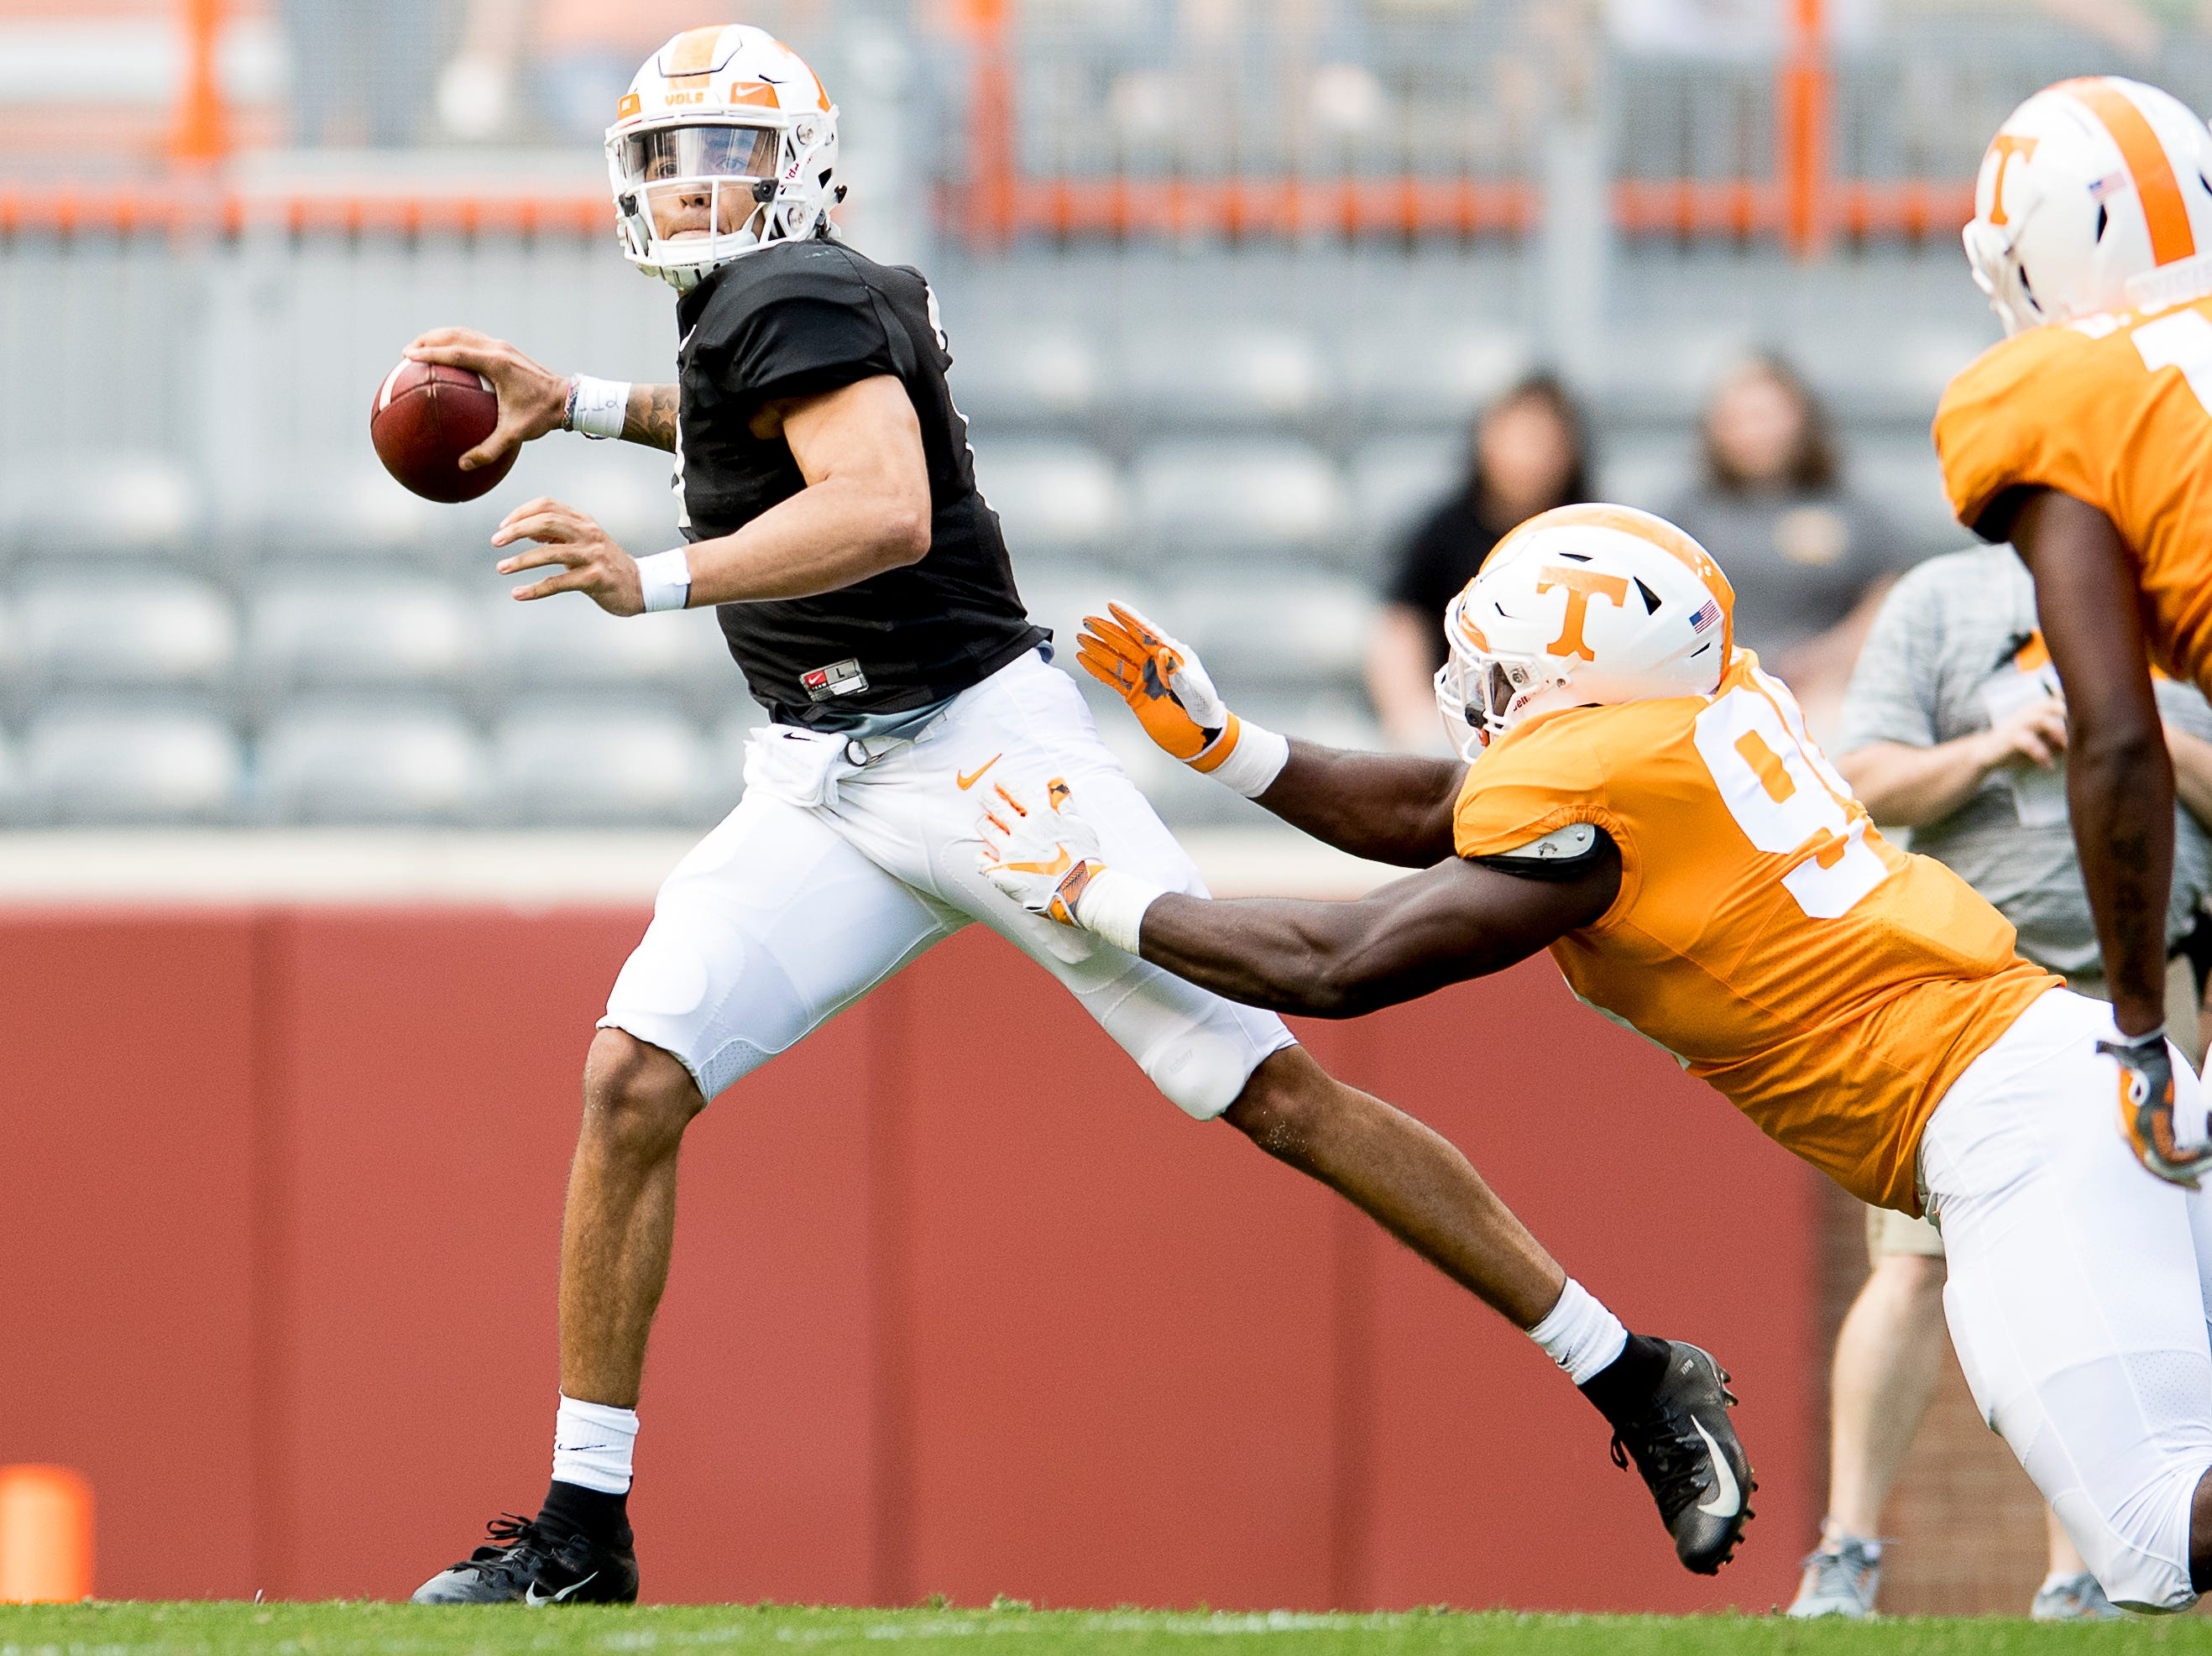 Tennessee quarterback Jarrett Guarantano (2) looks to pass as Tennessee defensive lineman Matthew Butler (94) defends during the Tennessee Spring Game at Neyland Stadium in Knoxville, Tennessee on Saturday, April 13, 2019.